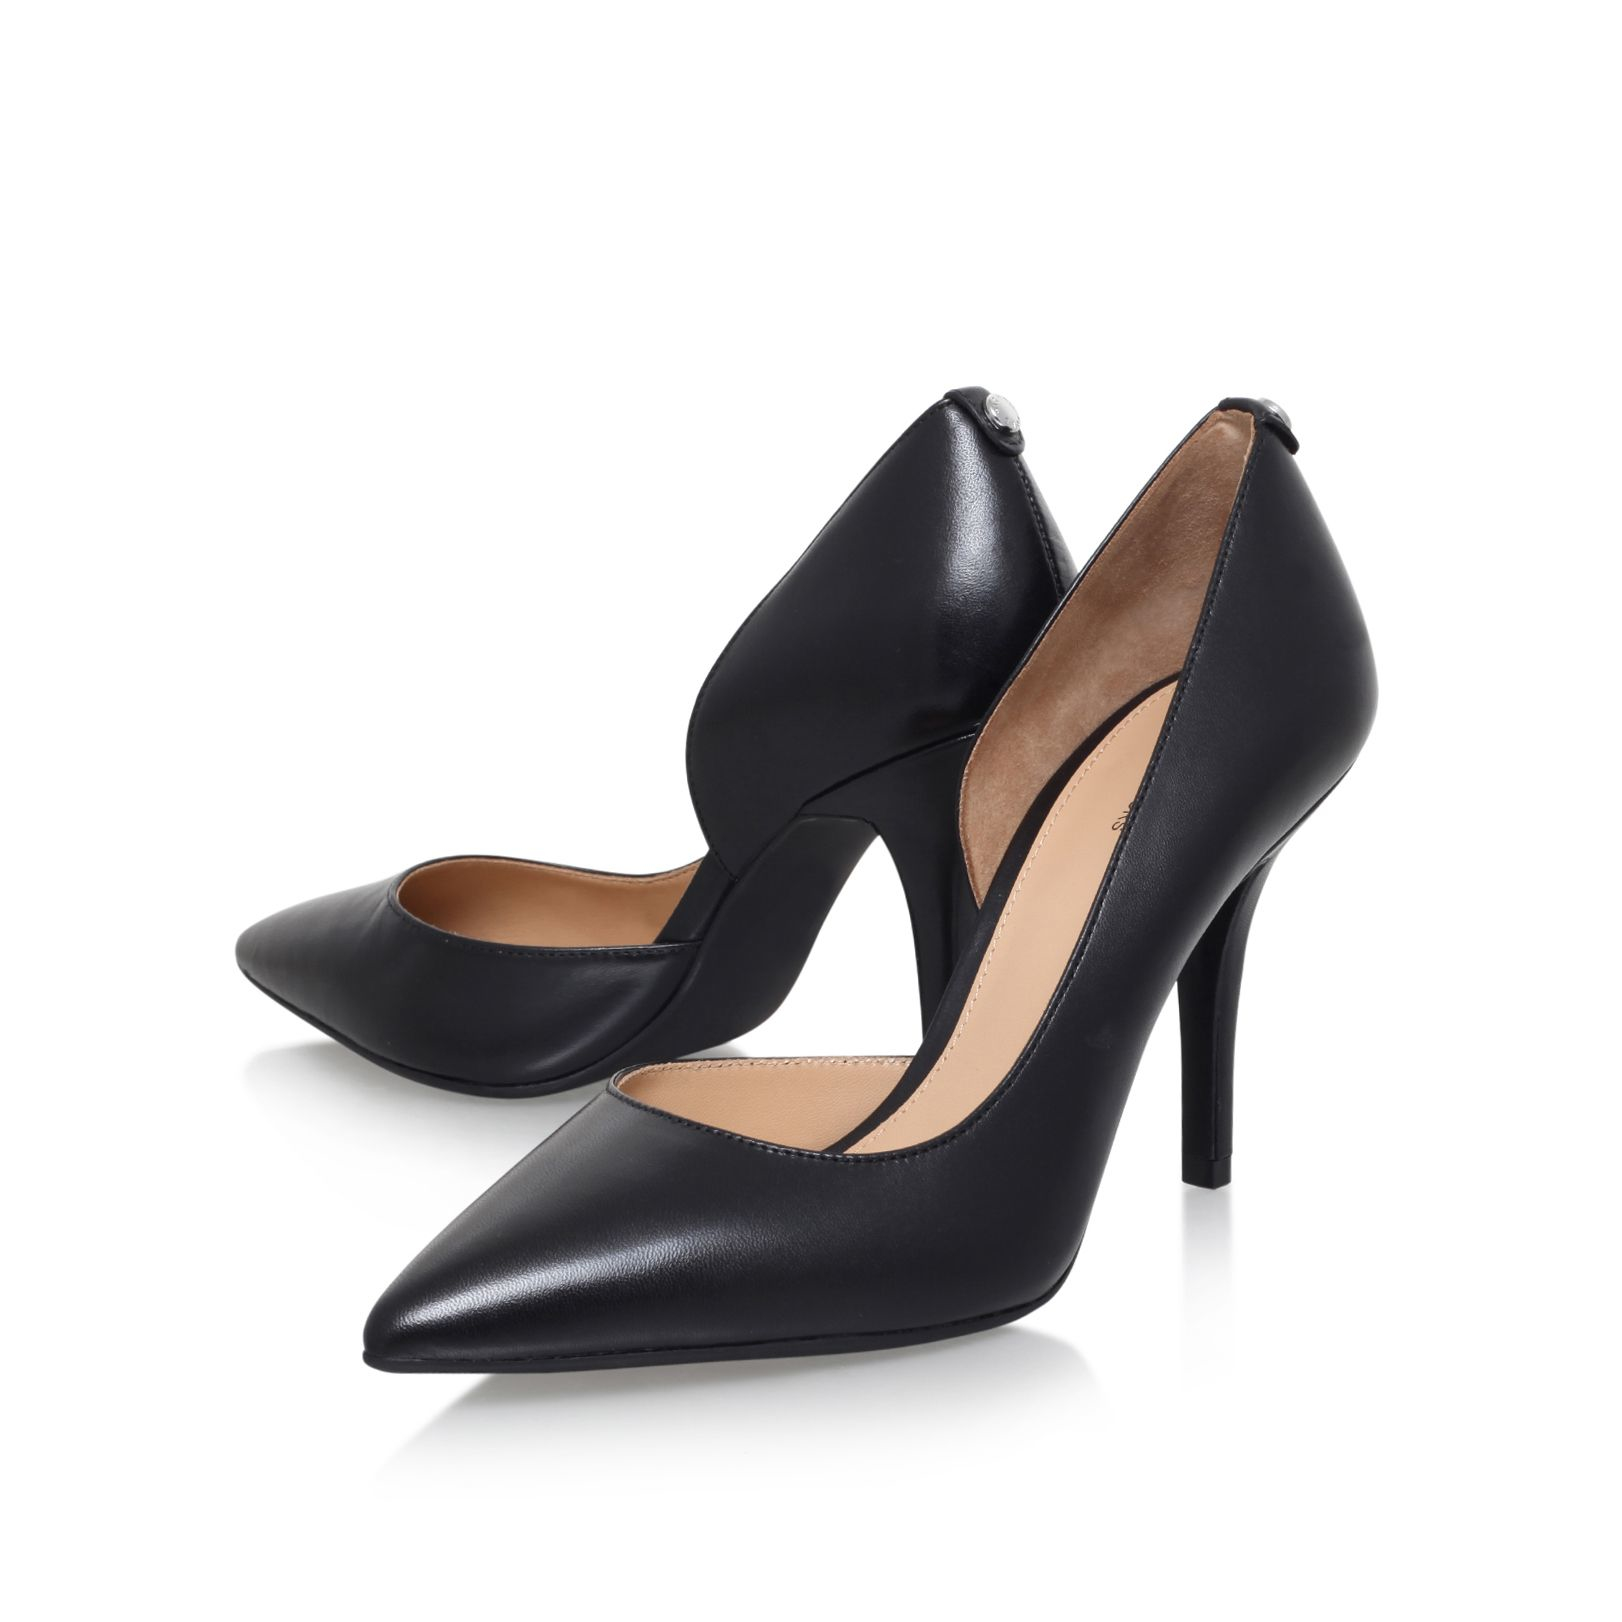 Lyst - Michael Kors Natalie High Pump Court Shoes In Black